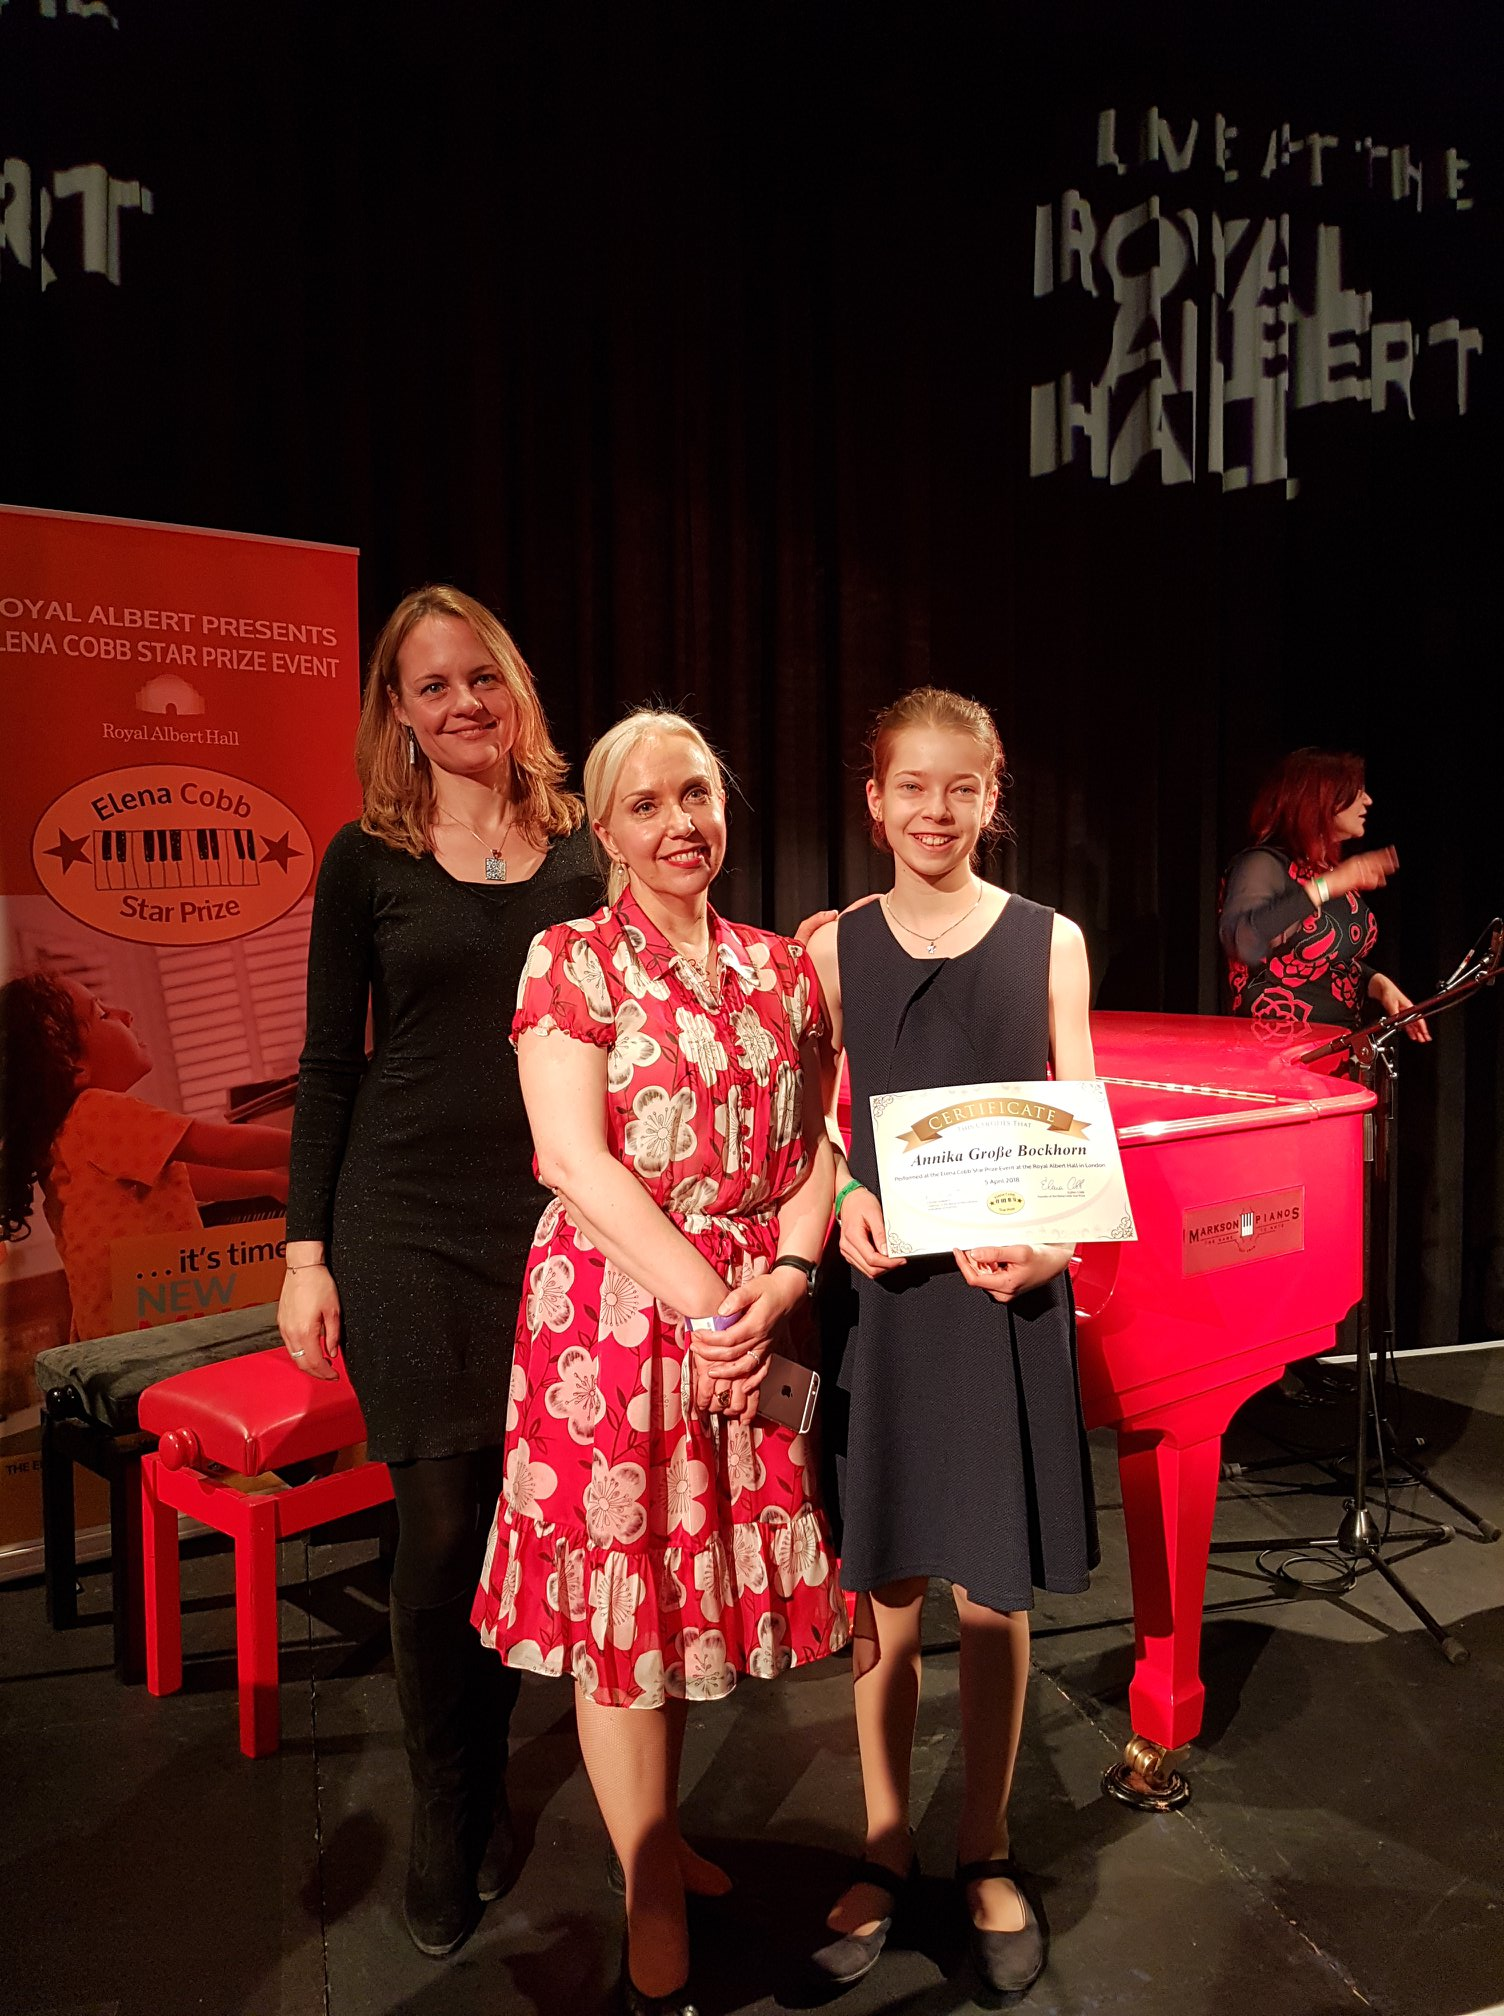 Elena Cobb Star Prize at the Royal Albert Hall